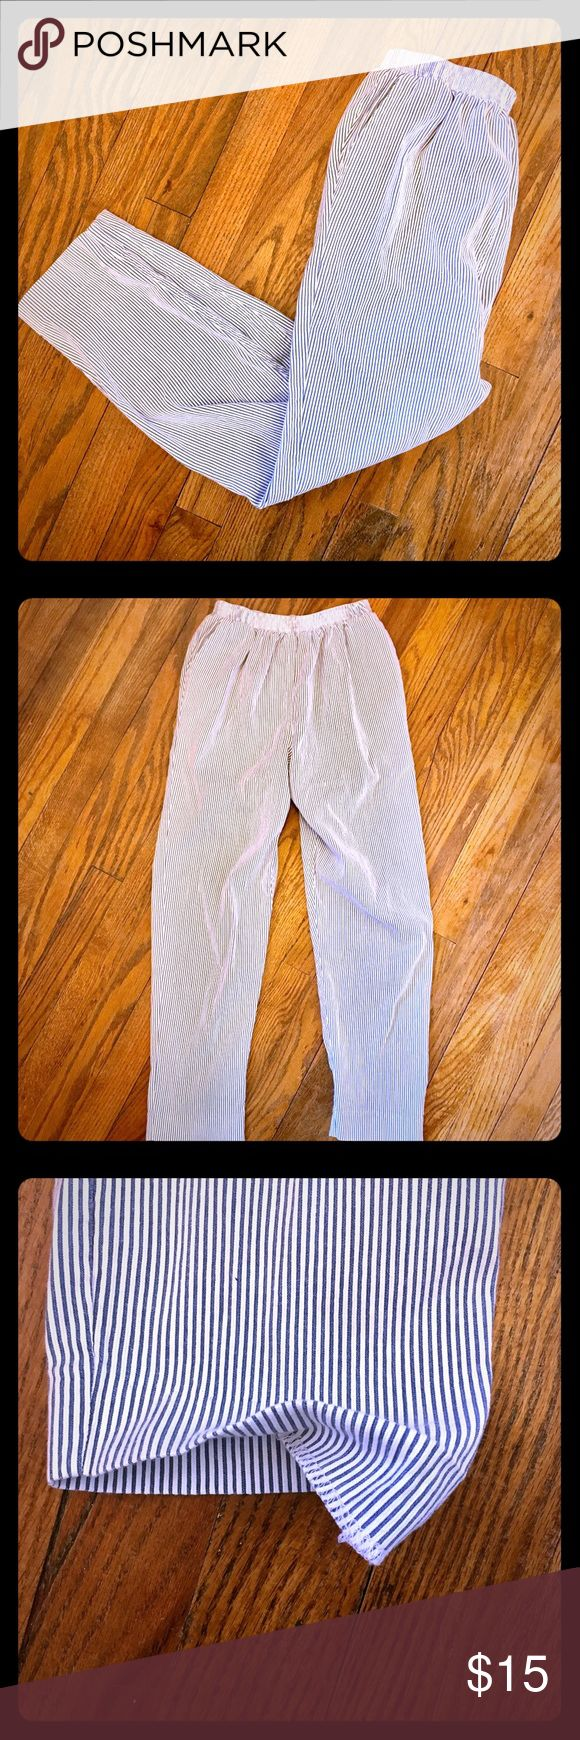 Seersucker lounging pants with POCKETS! Adorable and super comfortable seersucker pants size 6P with elastic waistband. These pants will easily become your new favorite :) In perfect condition other than hem coming undone a little on bottom left pant leg, shown in picture and reflected in price. Alfred Dunner Pants